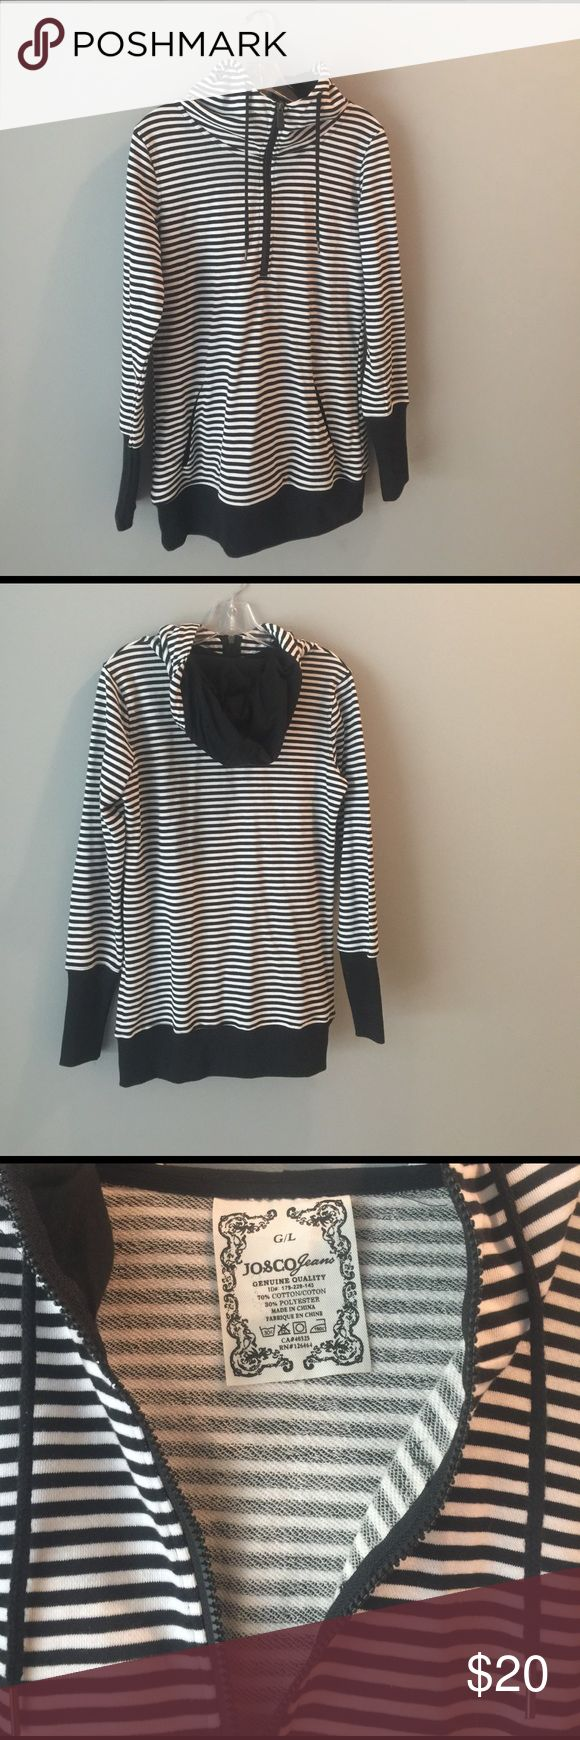 Black and white striped hoodie. NWOT. Super comfy & cute black and white striped half zip up hoodie.   NWOT .  Great for a beach coverup or a work out. JO & CO jeans  Tops Sweatshirts & Hoodies